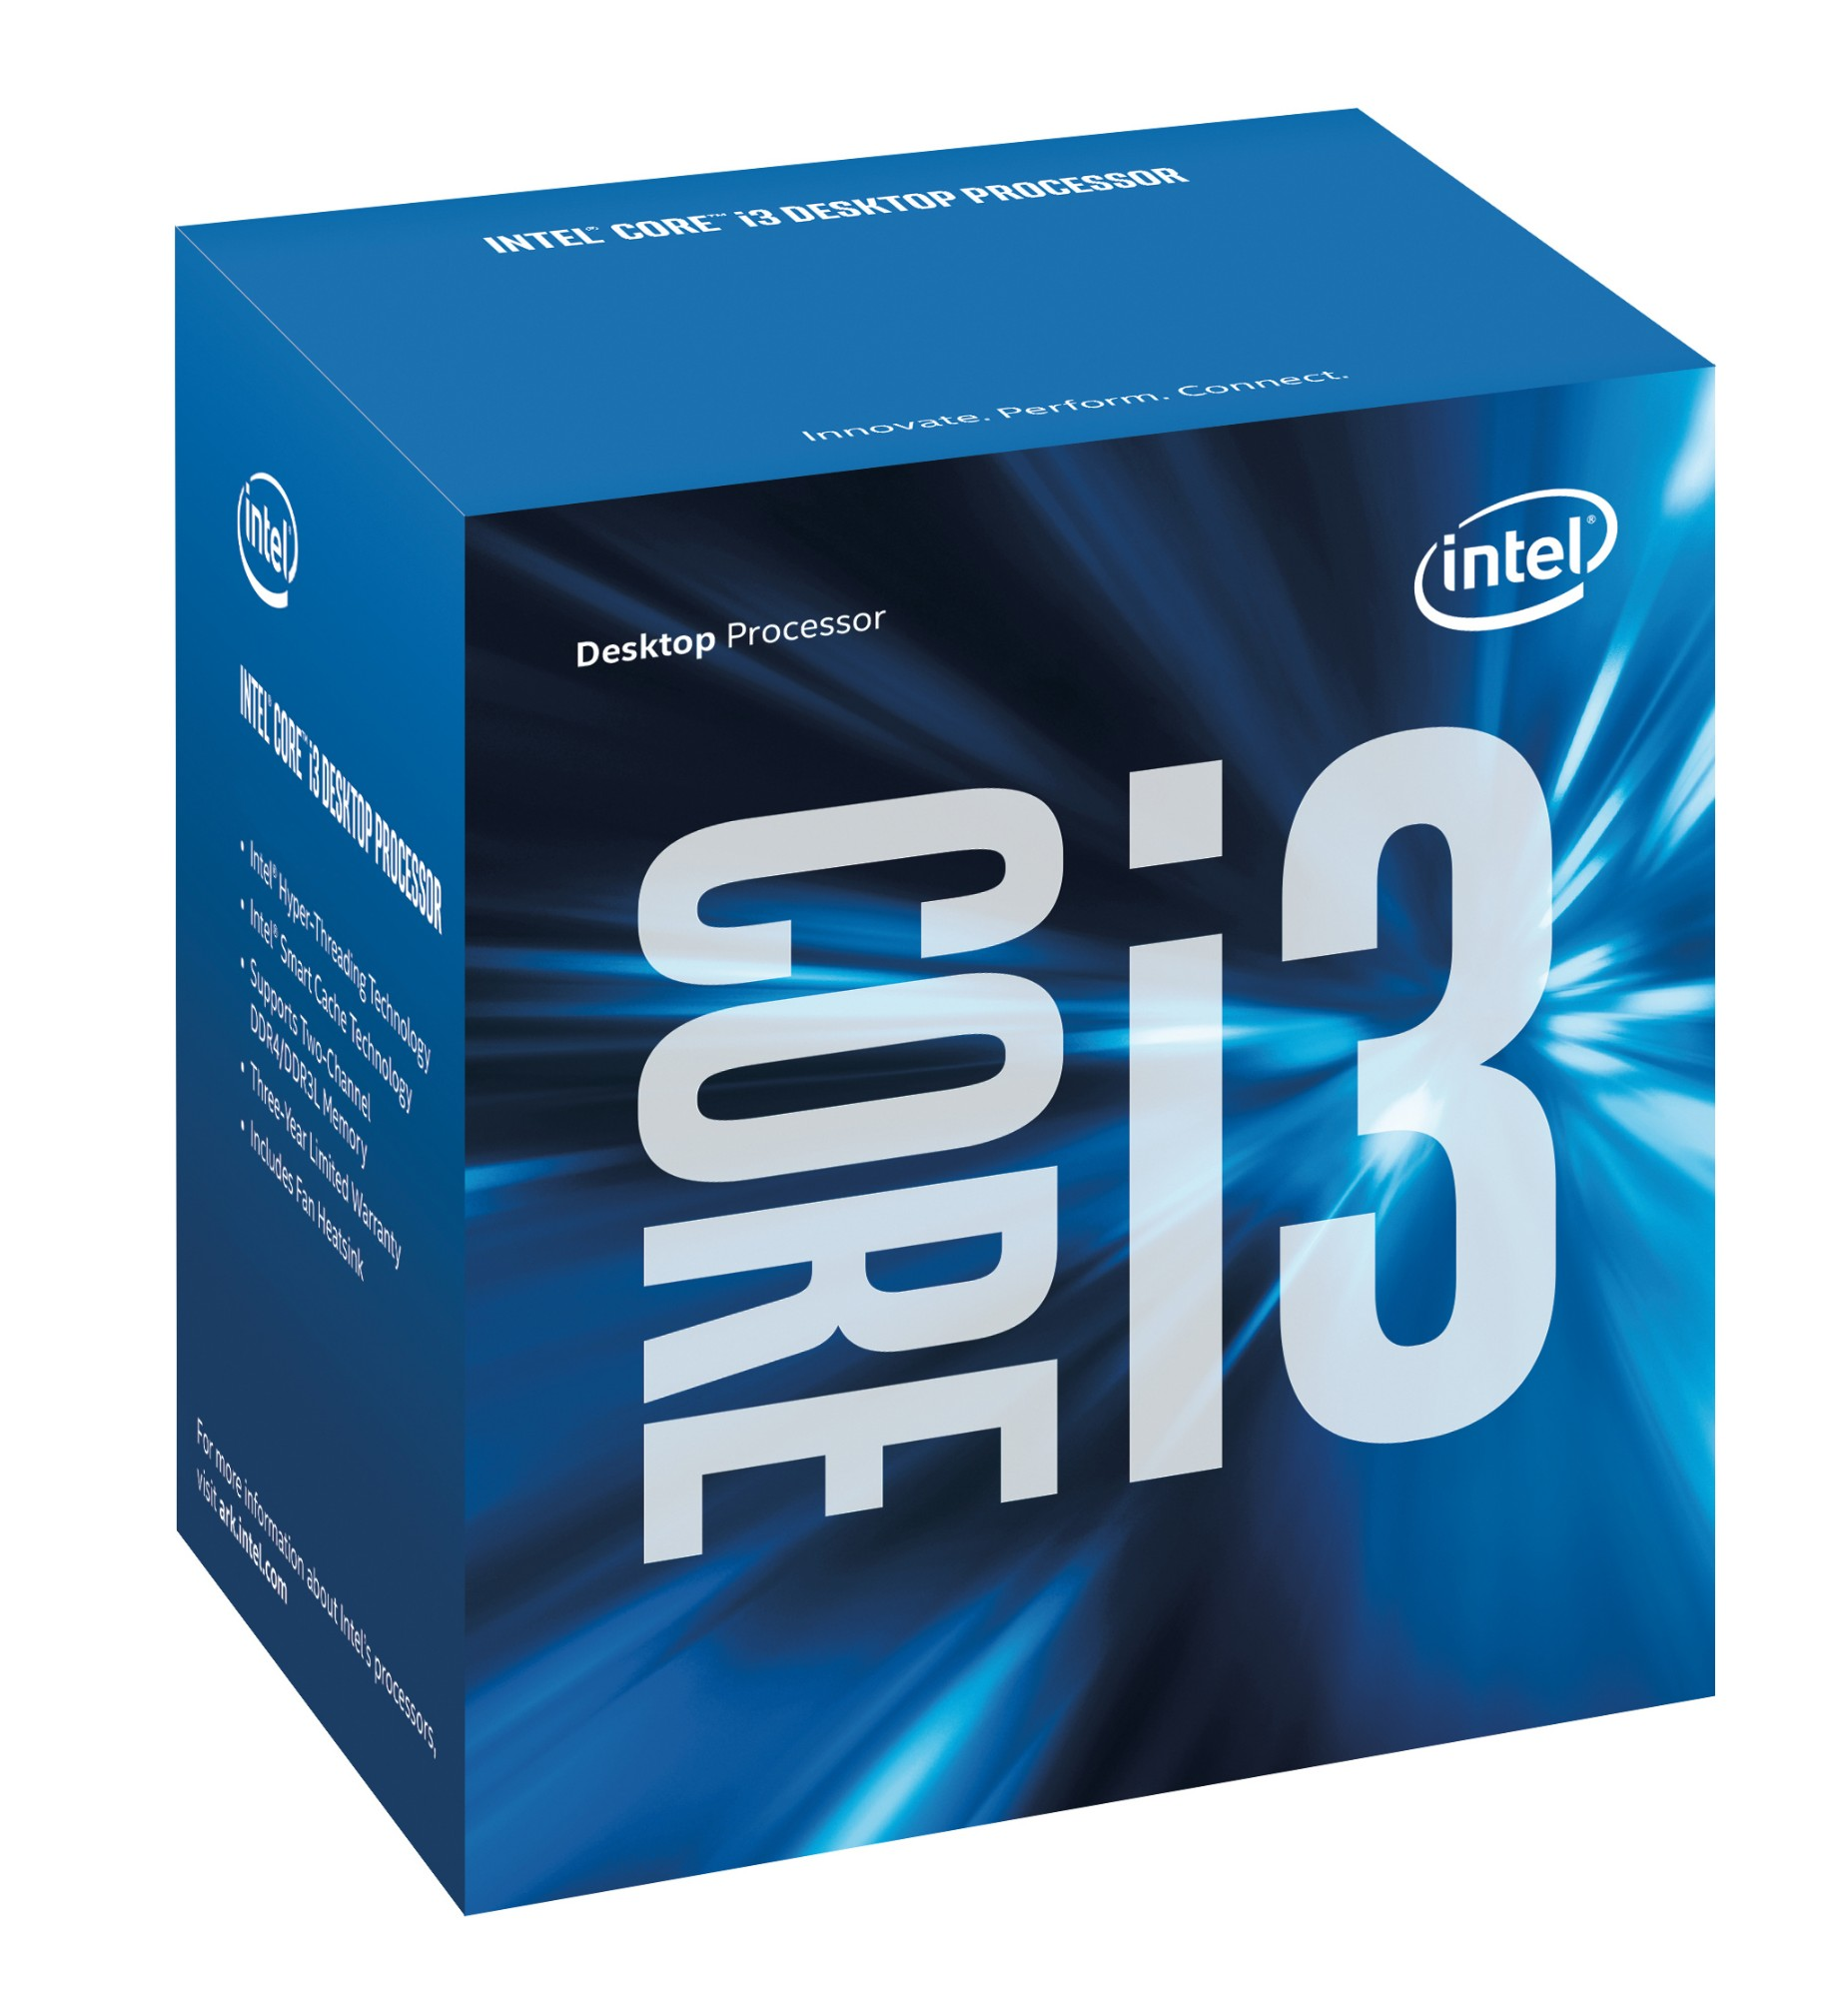 Intel Core ® ™ i3-4170 Processor (3M Cache, 3.70 GHz) 3.7GHz 3MB L3 Box processor